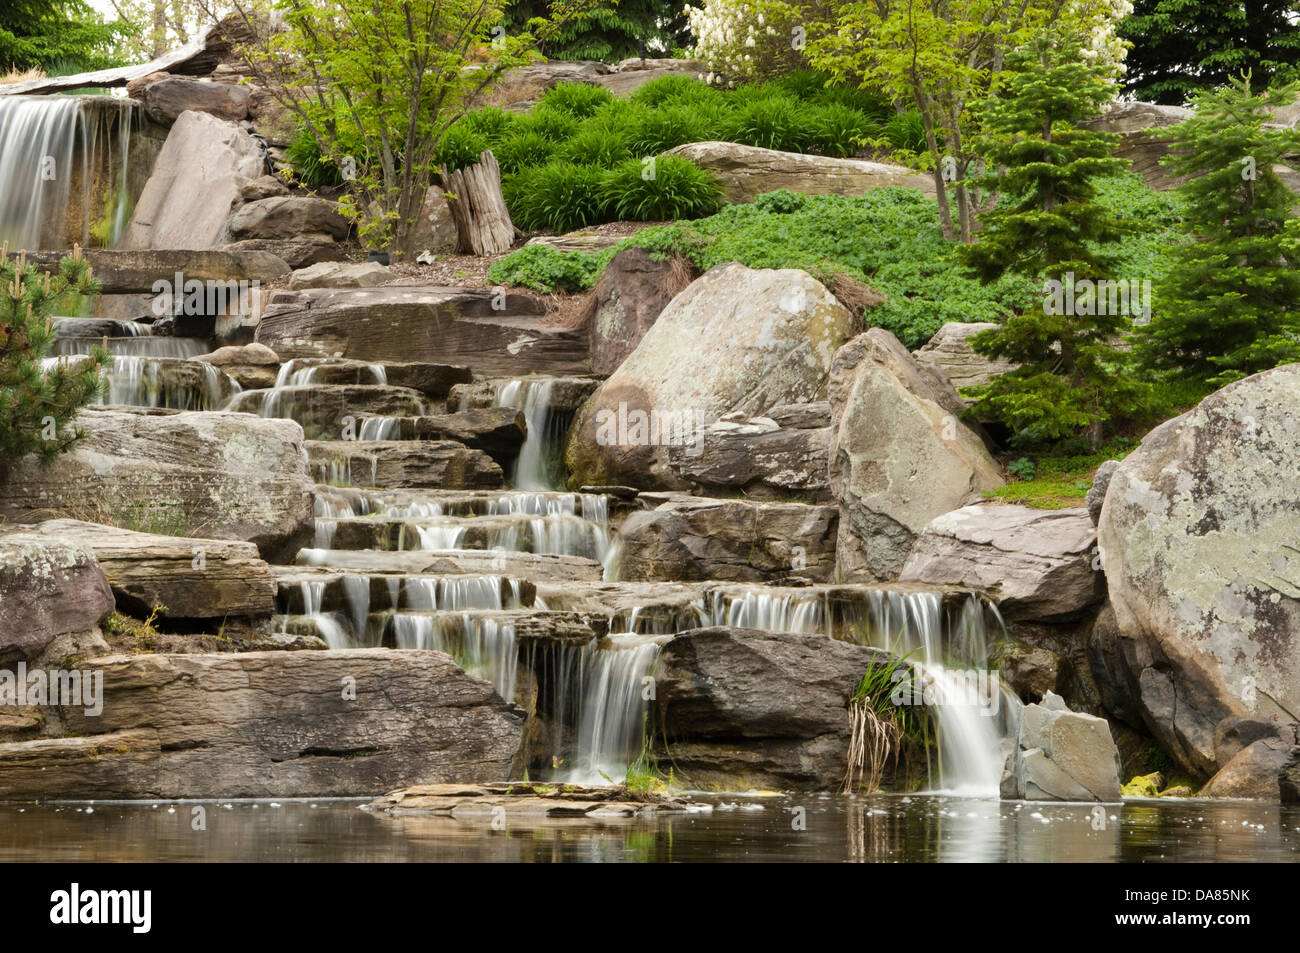 Frederik Meijer Gardens and Sculpture Park, Grand Rapids, Michigan, United States of America - Stock Image